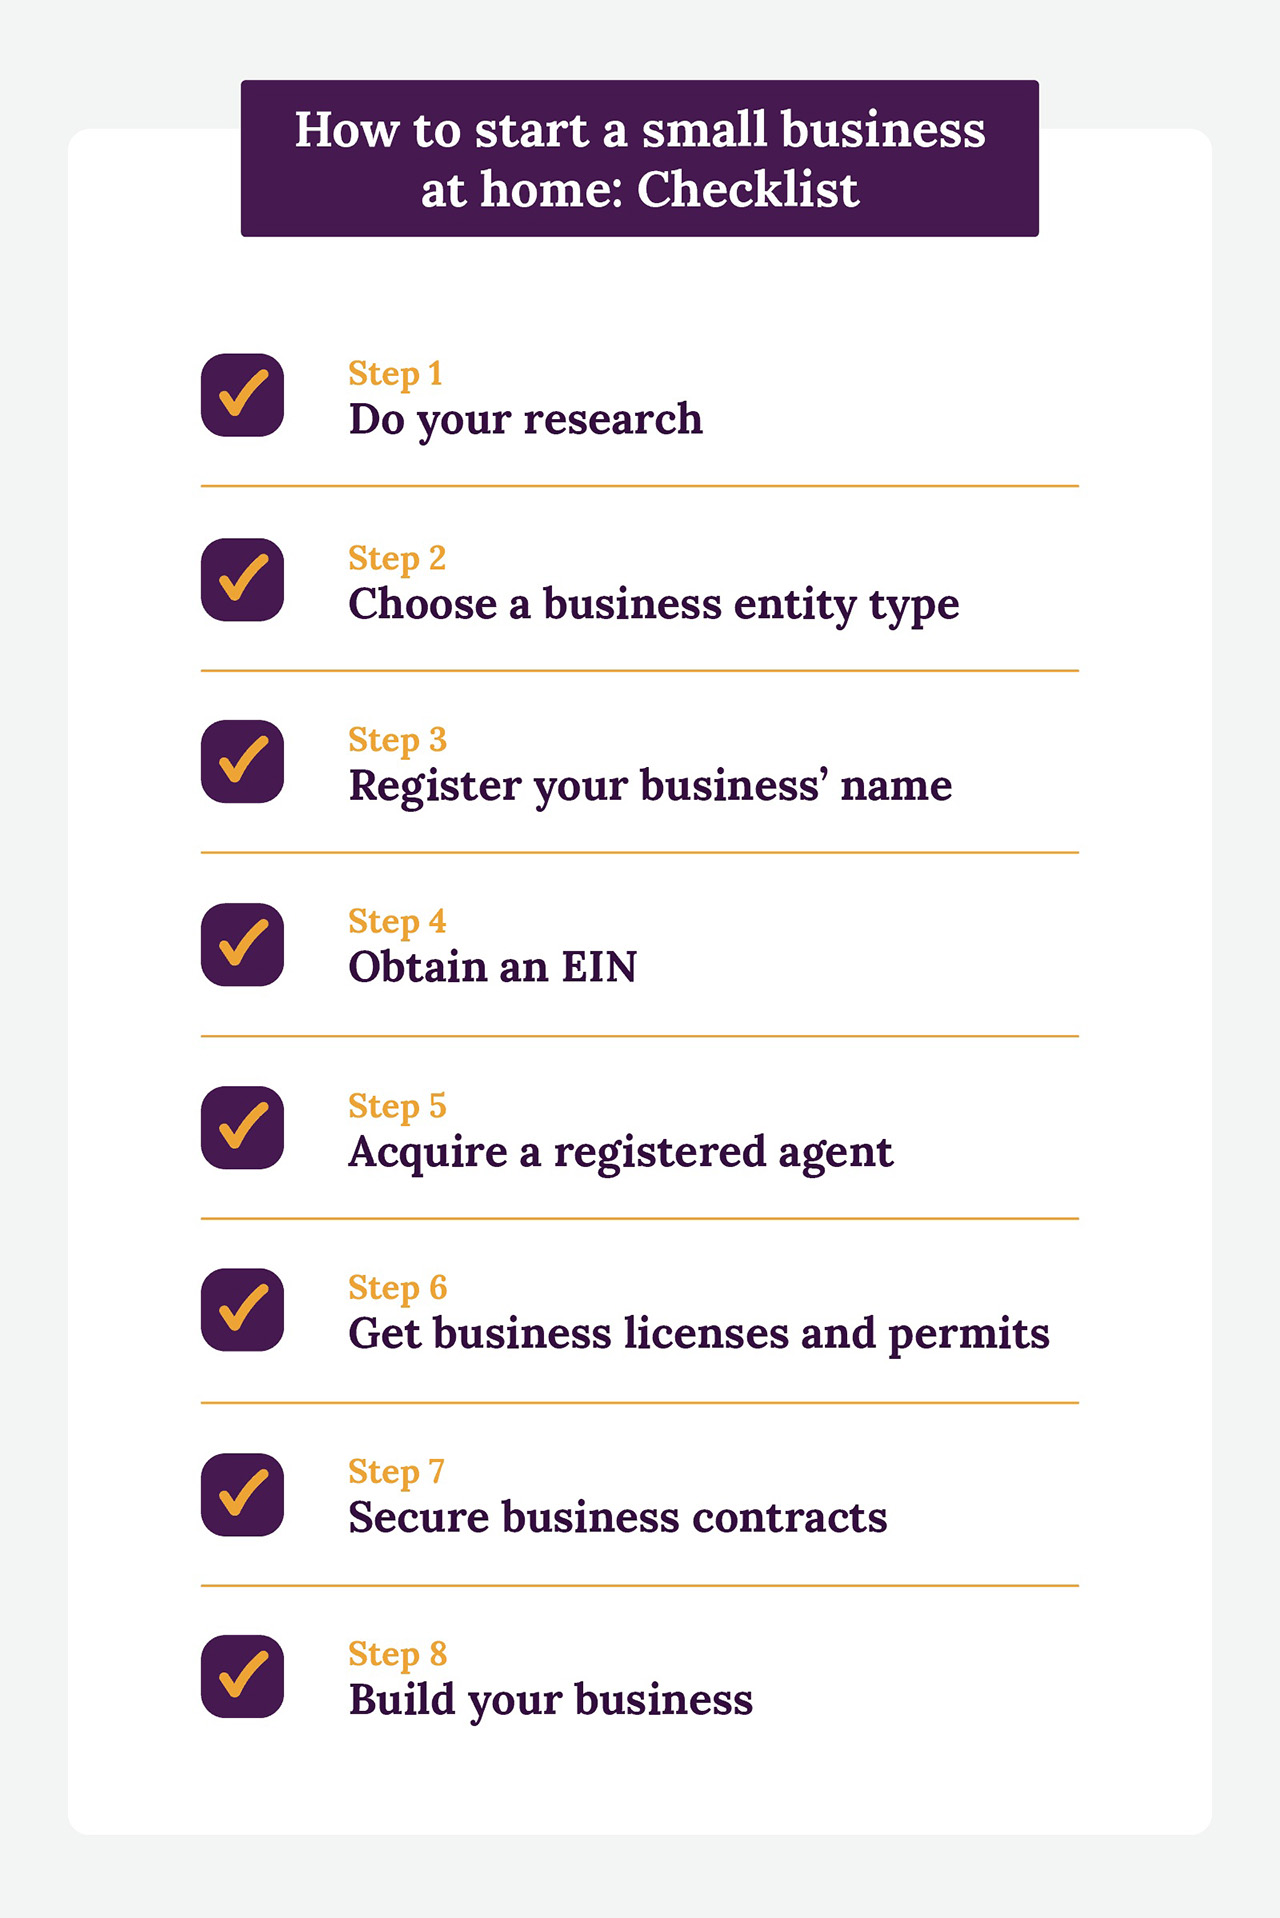 How to start a small business at home checklist